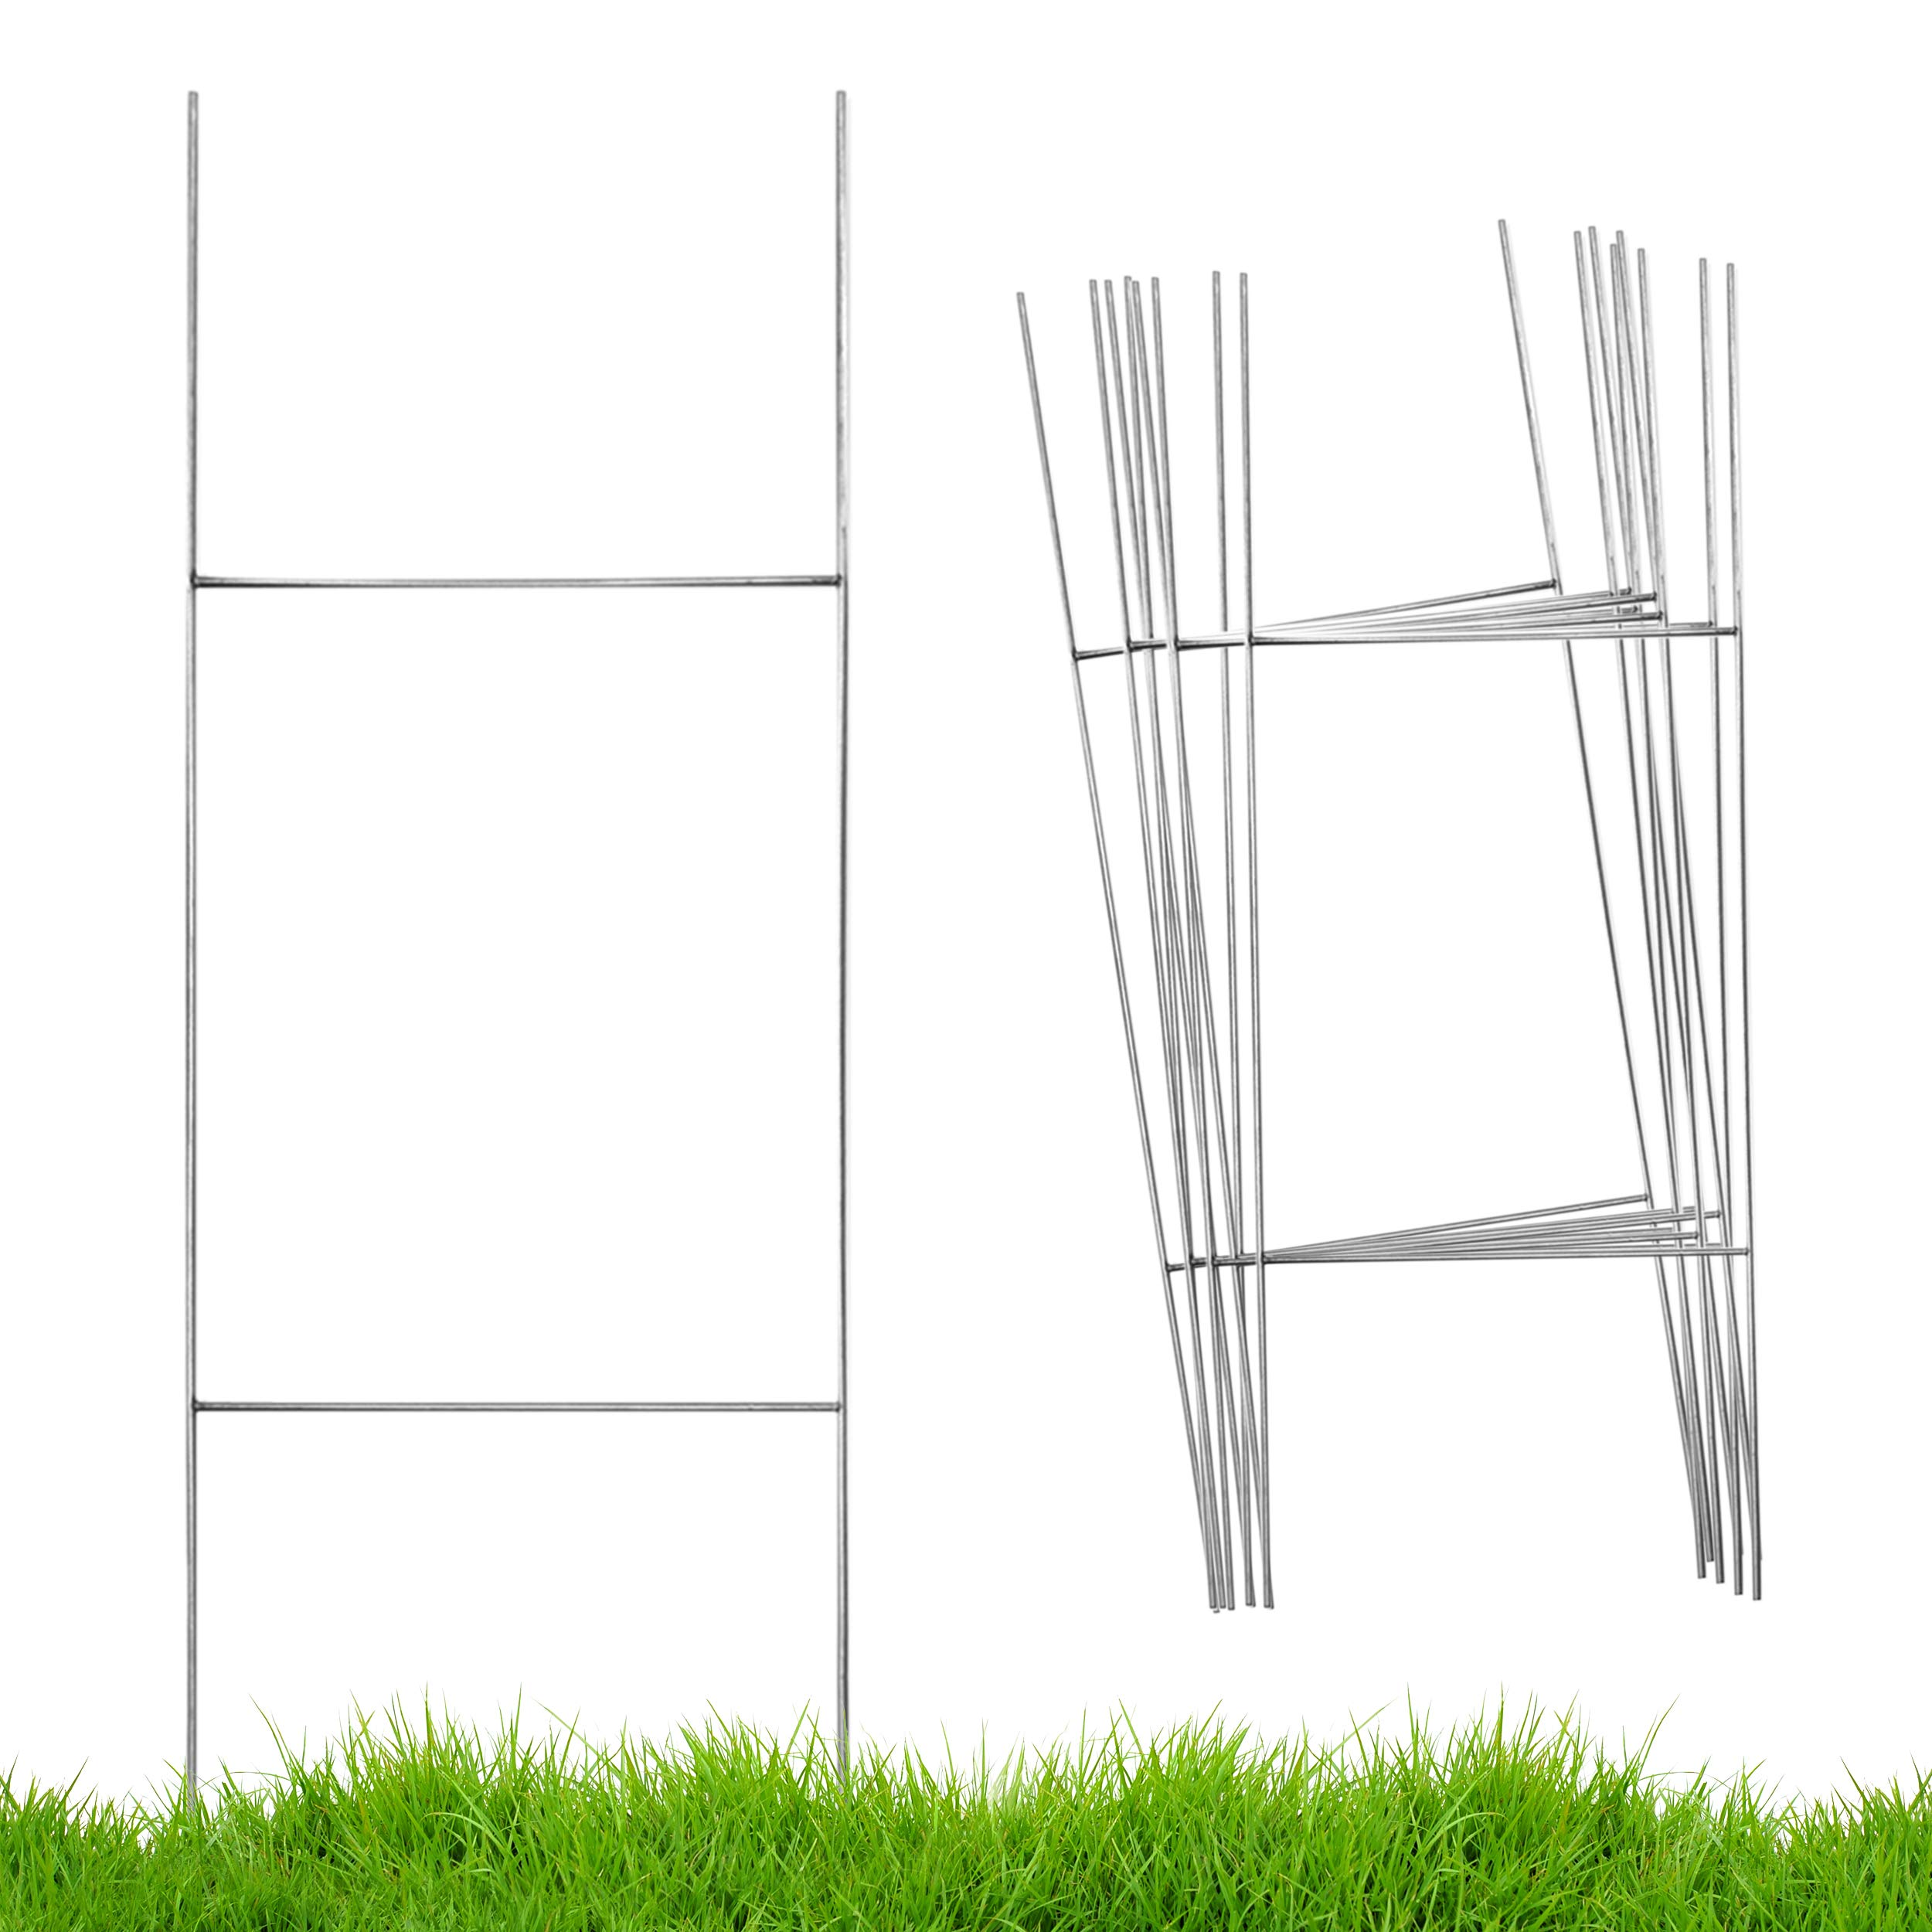 Heart Felt Love Yard Sign Stakes, H Frame Wire Stake Metal Frames   for Real Estate Realtor Signs, X Campaign Political Lawn Yardsigns, Stands, Step Stands, Business Bracket + More (50 Pack, 30)